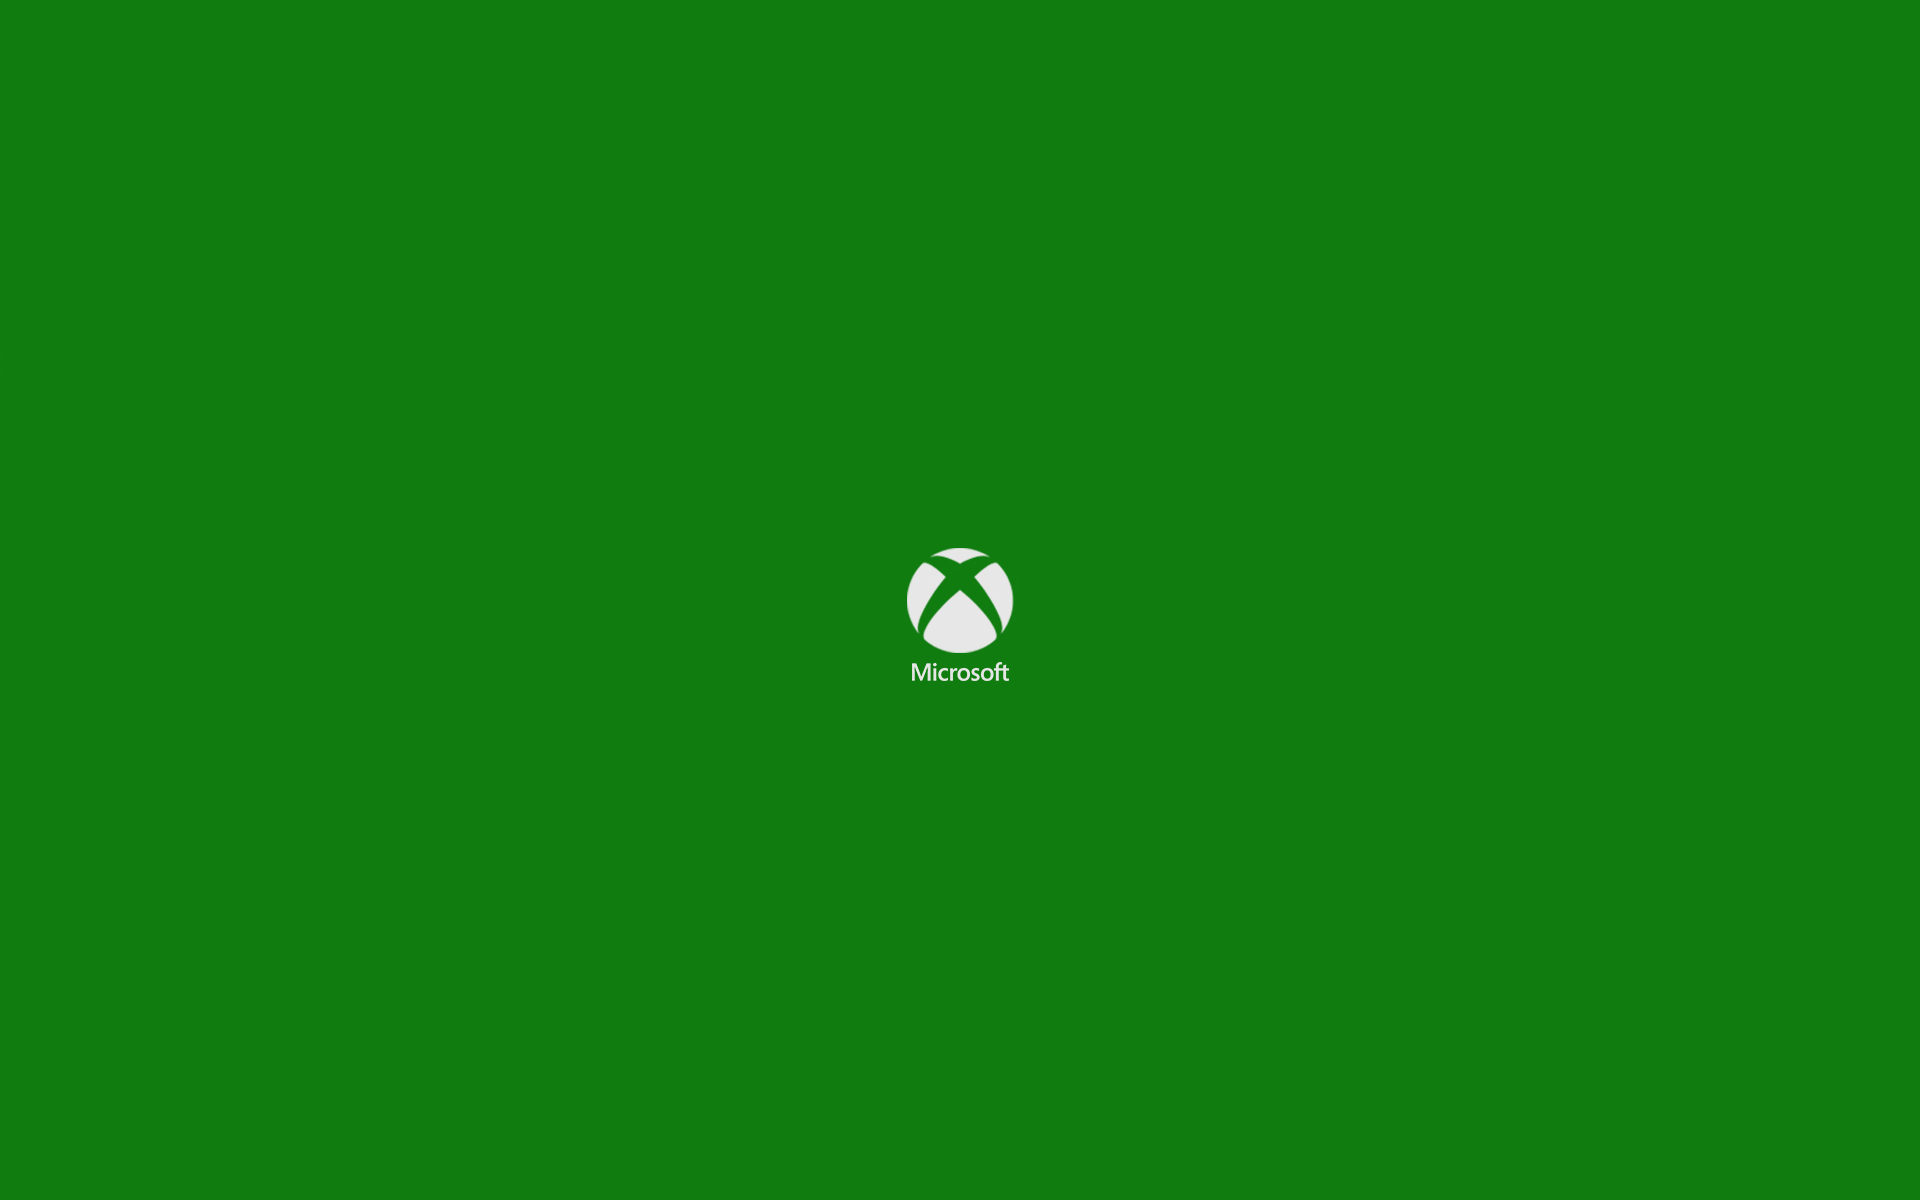 Xbox One Logo Wallpaper - WallpaperSafari Xbox One Game Wallpaper